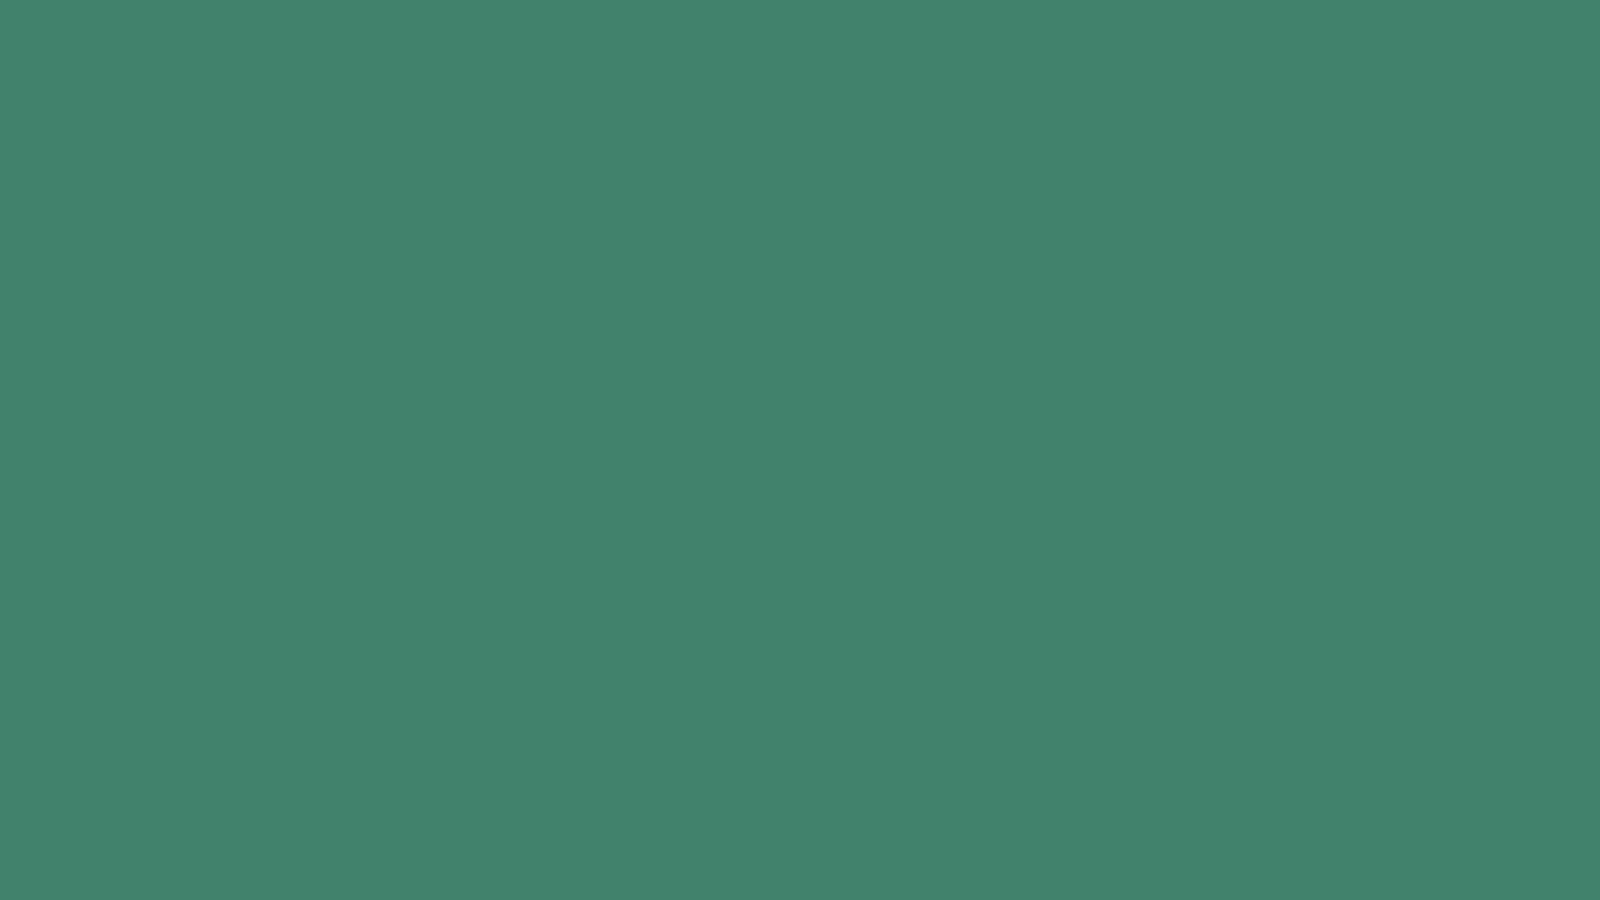 1600x900 Viridian Solid Color Background